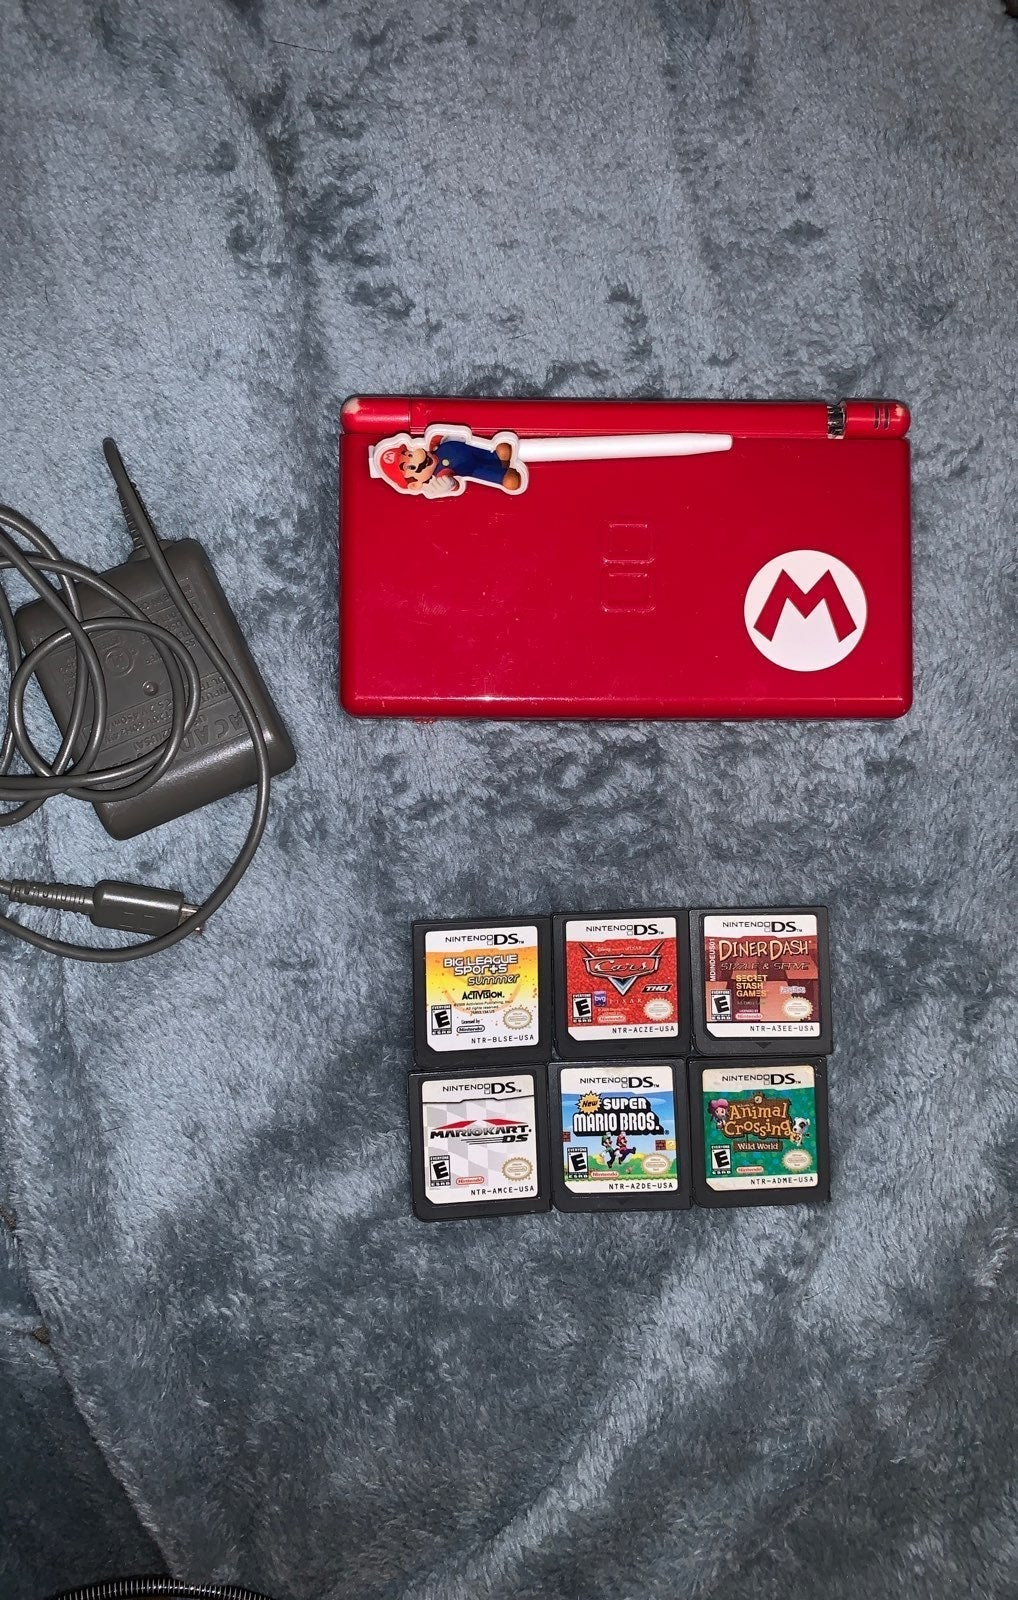 Nintendo Ds w/ games and a charger